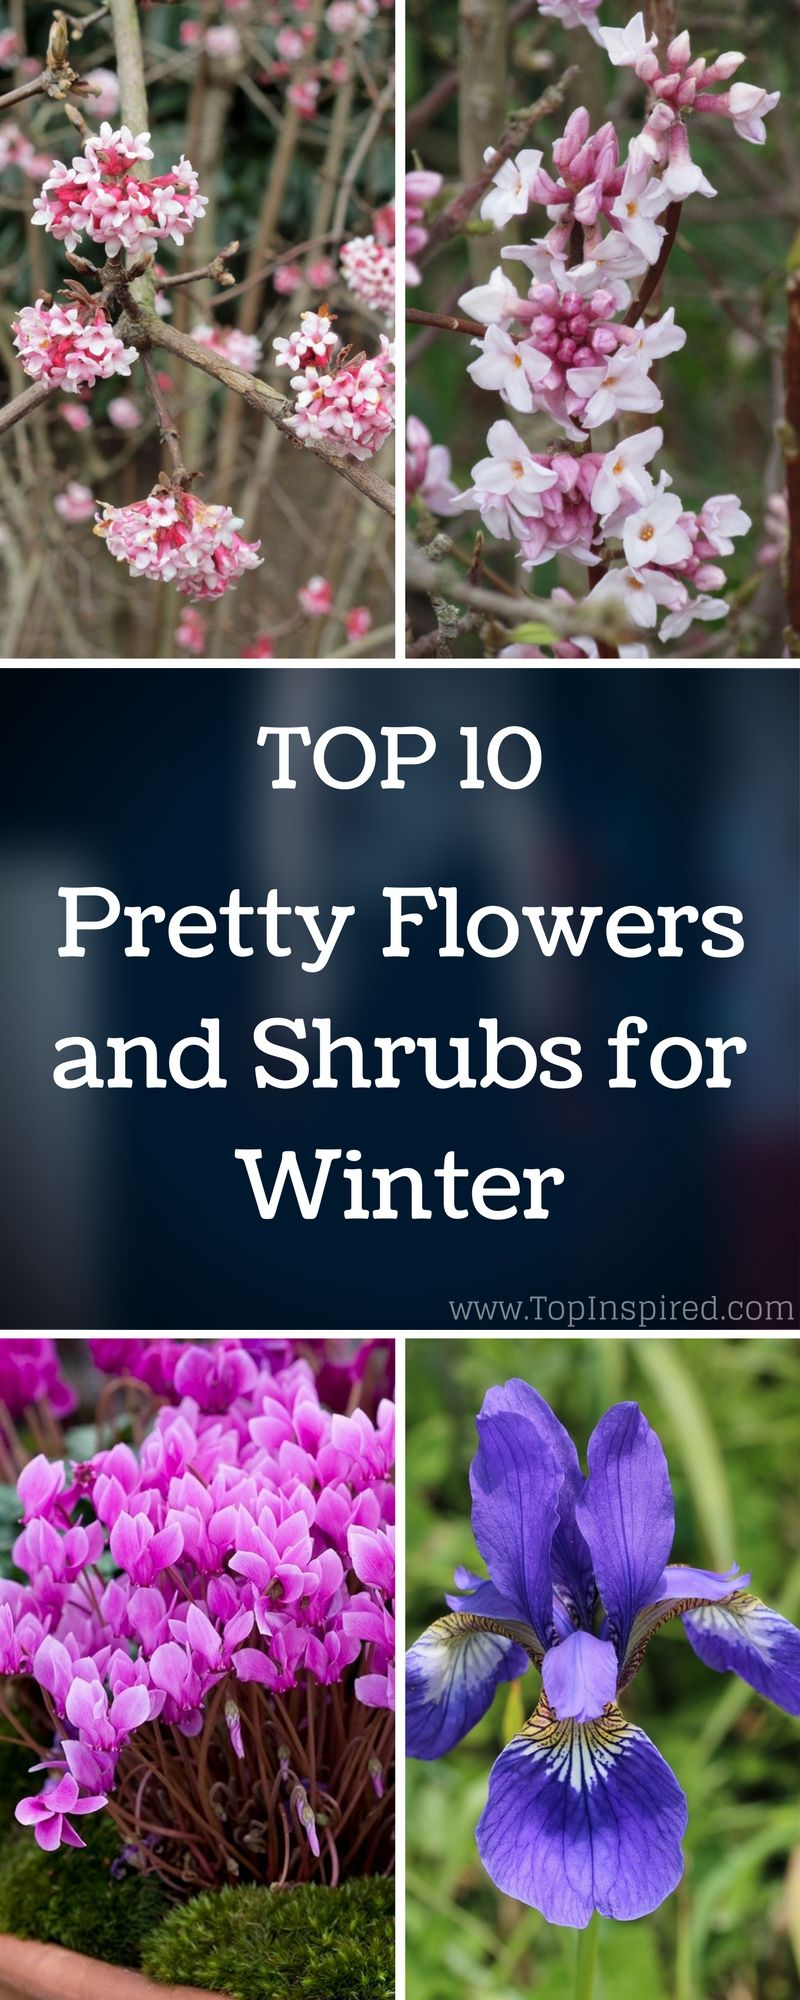 top 10 pretty flowers and shrubs for winter winter gardens and